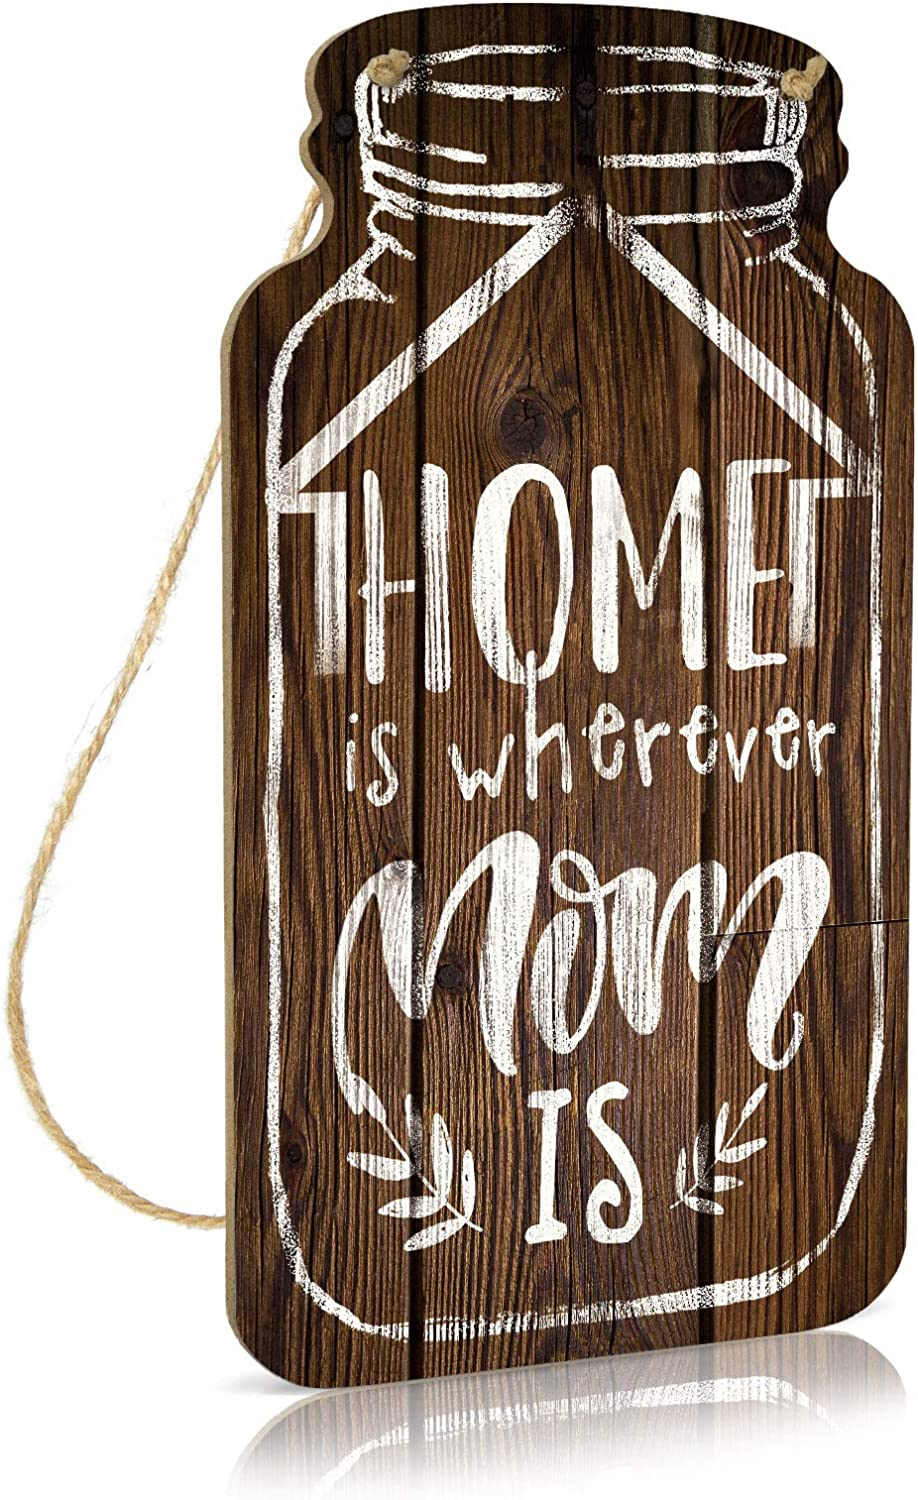 Putuo Decor Mason Jar Sign, Family Wall Decor for Kitchen, Bedroom, Living Room, 8.3x4.5 Inches Country Farmhouse Wood Hanging Plaque Sign, Gift for Mom - Home is Wherever Mom is